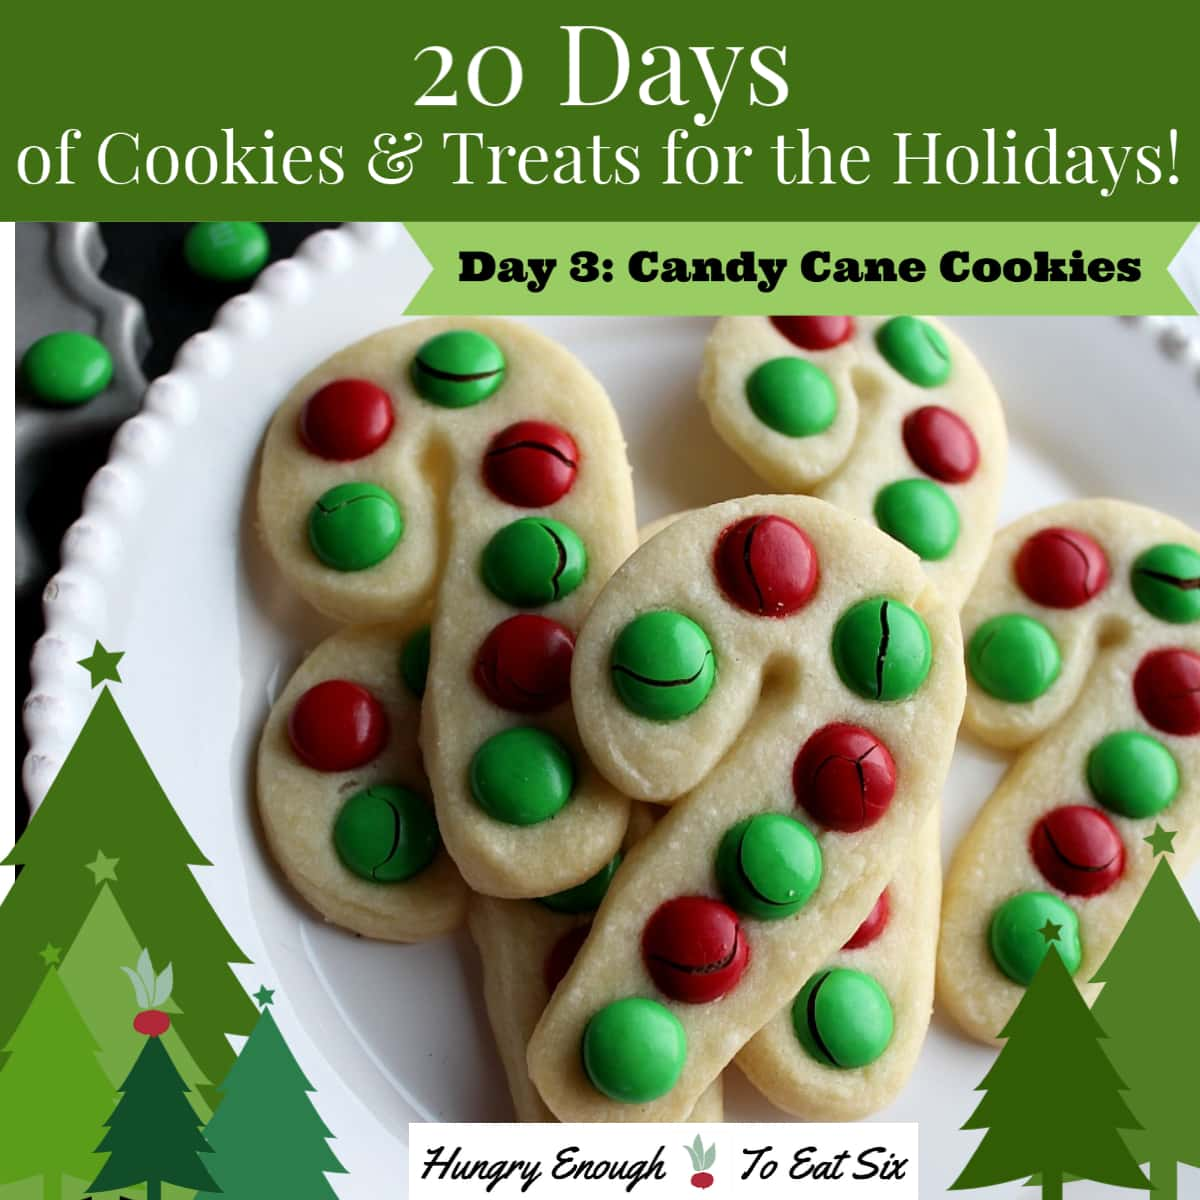 White plate with cookies decorated with red and green candies